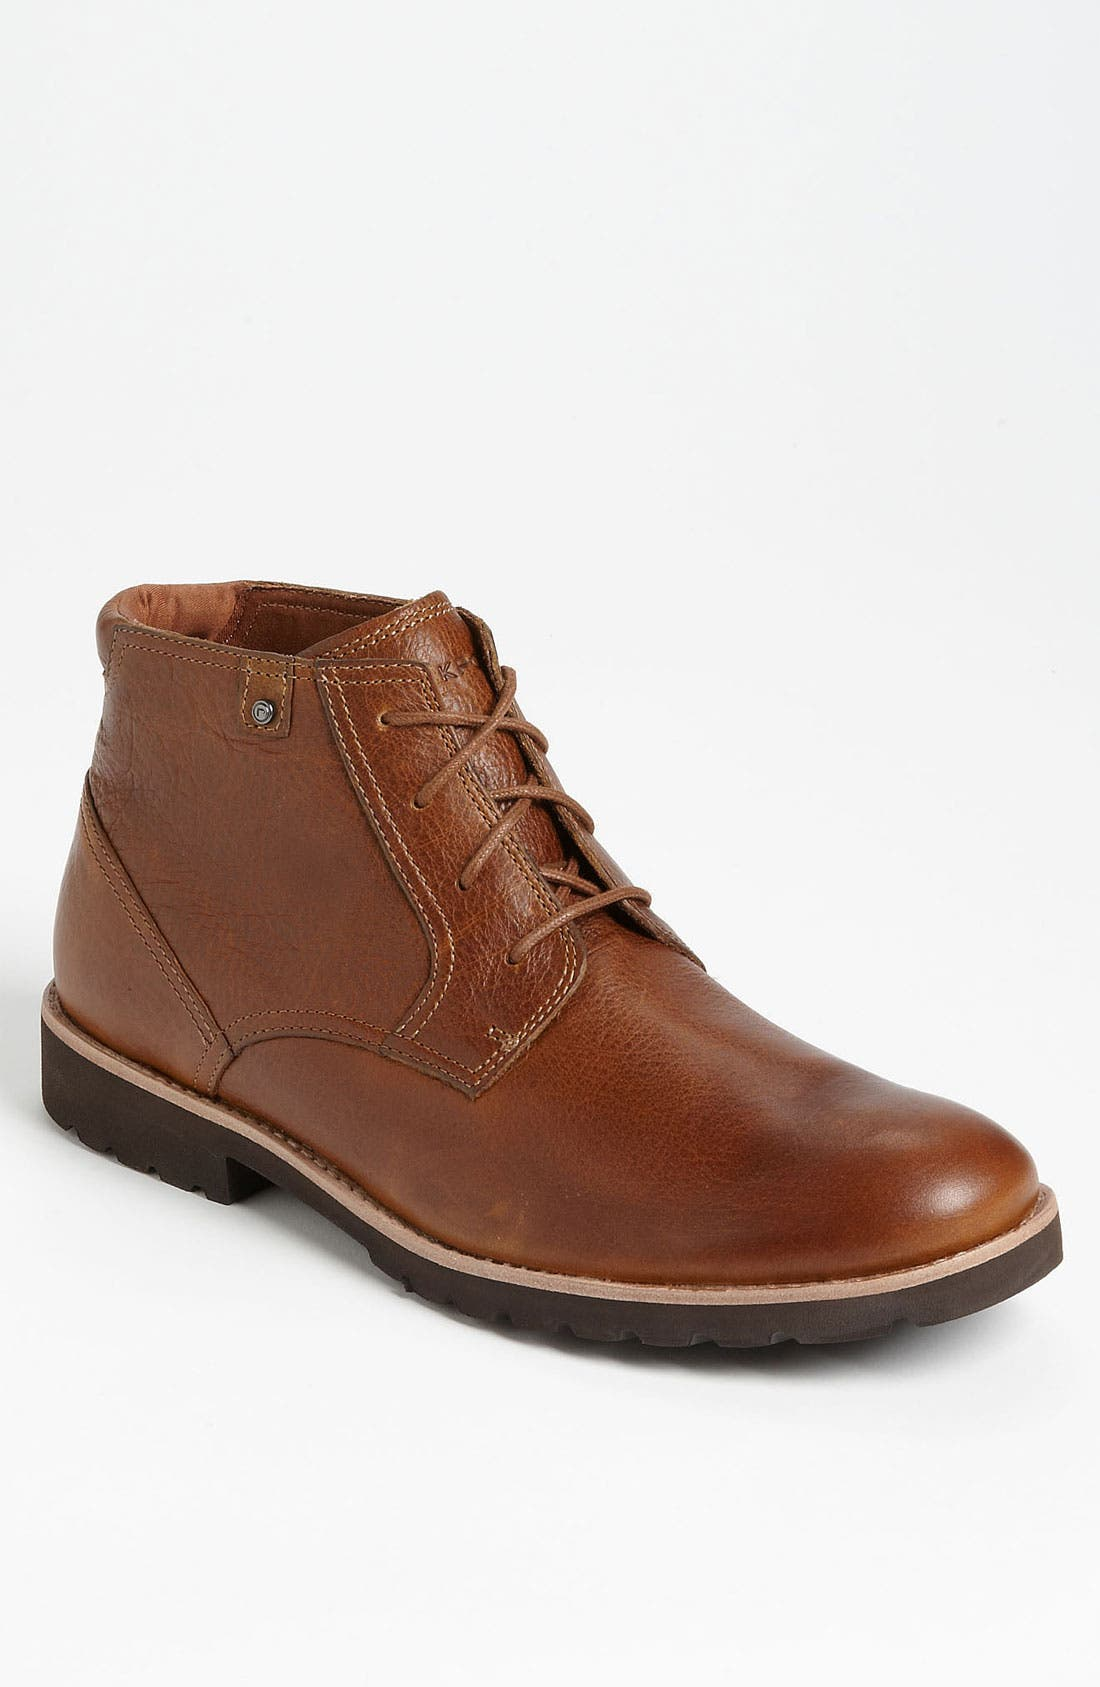 Main Image - Rockport 'Ledge Hill' Chukka Boot (Online Only)